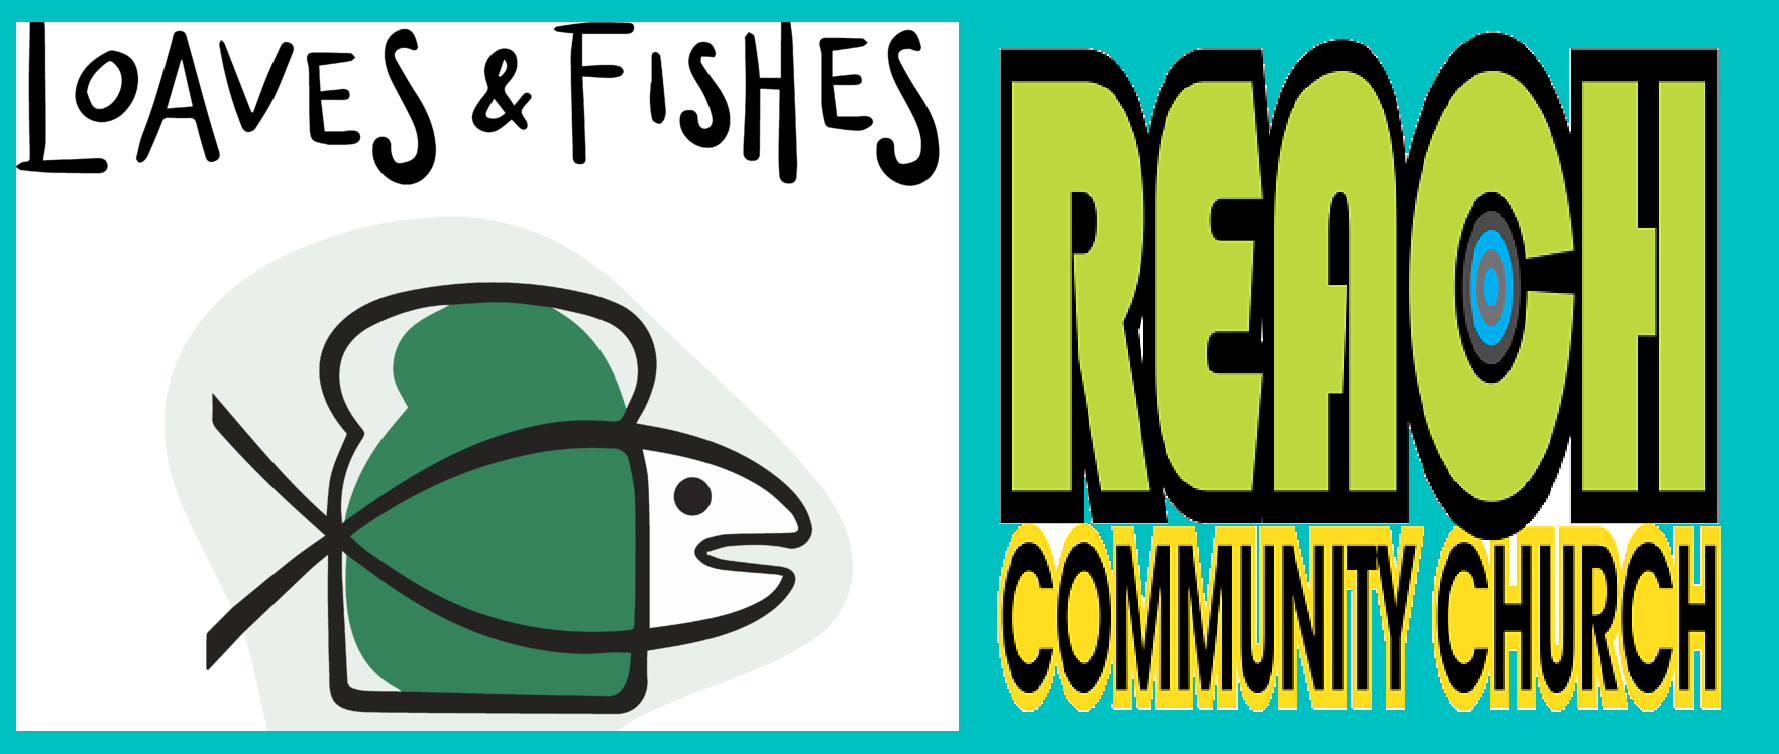 Loaves and Fishes: Outreach of REACH Community Church Fort Pierce